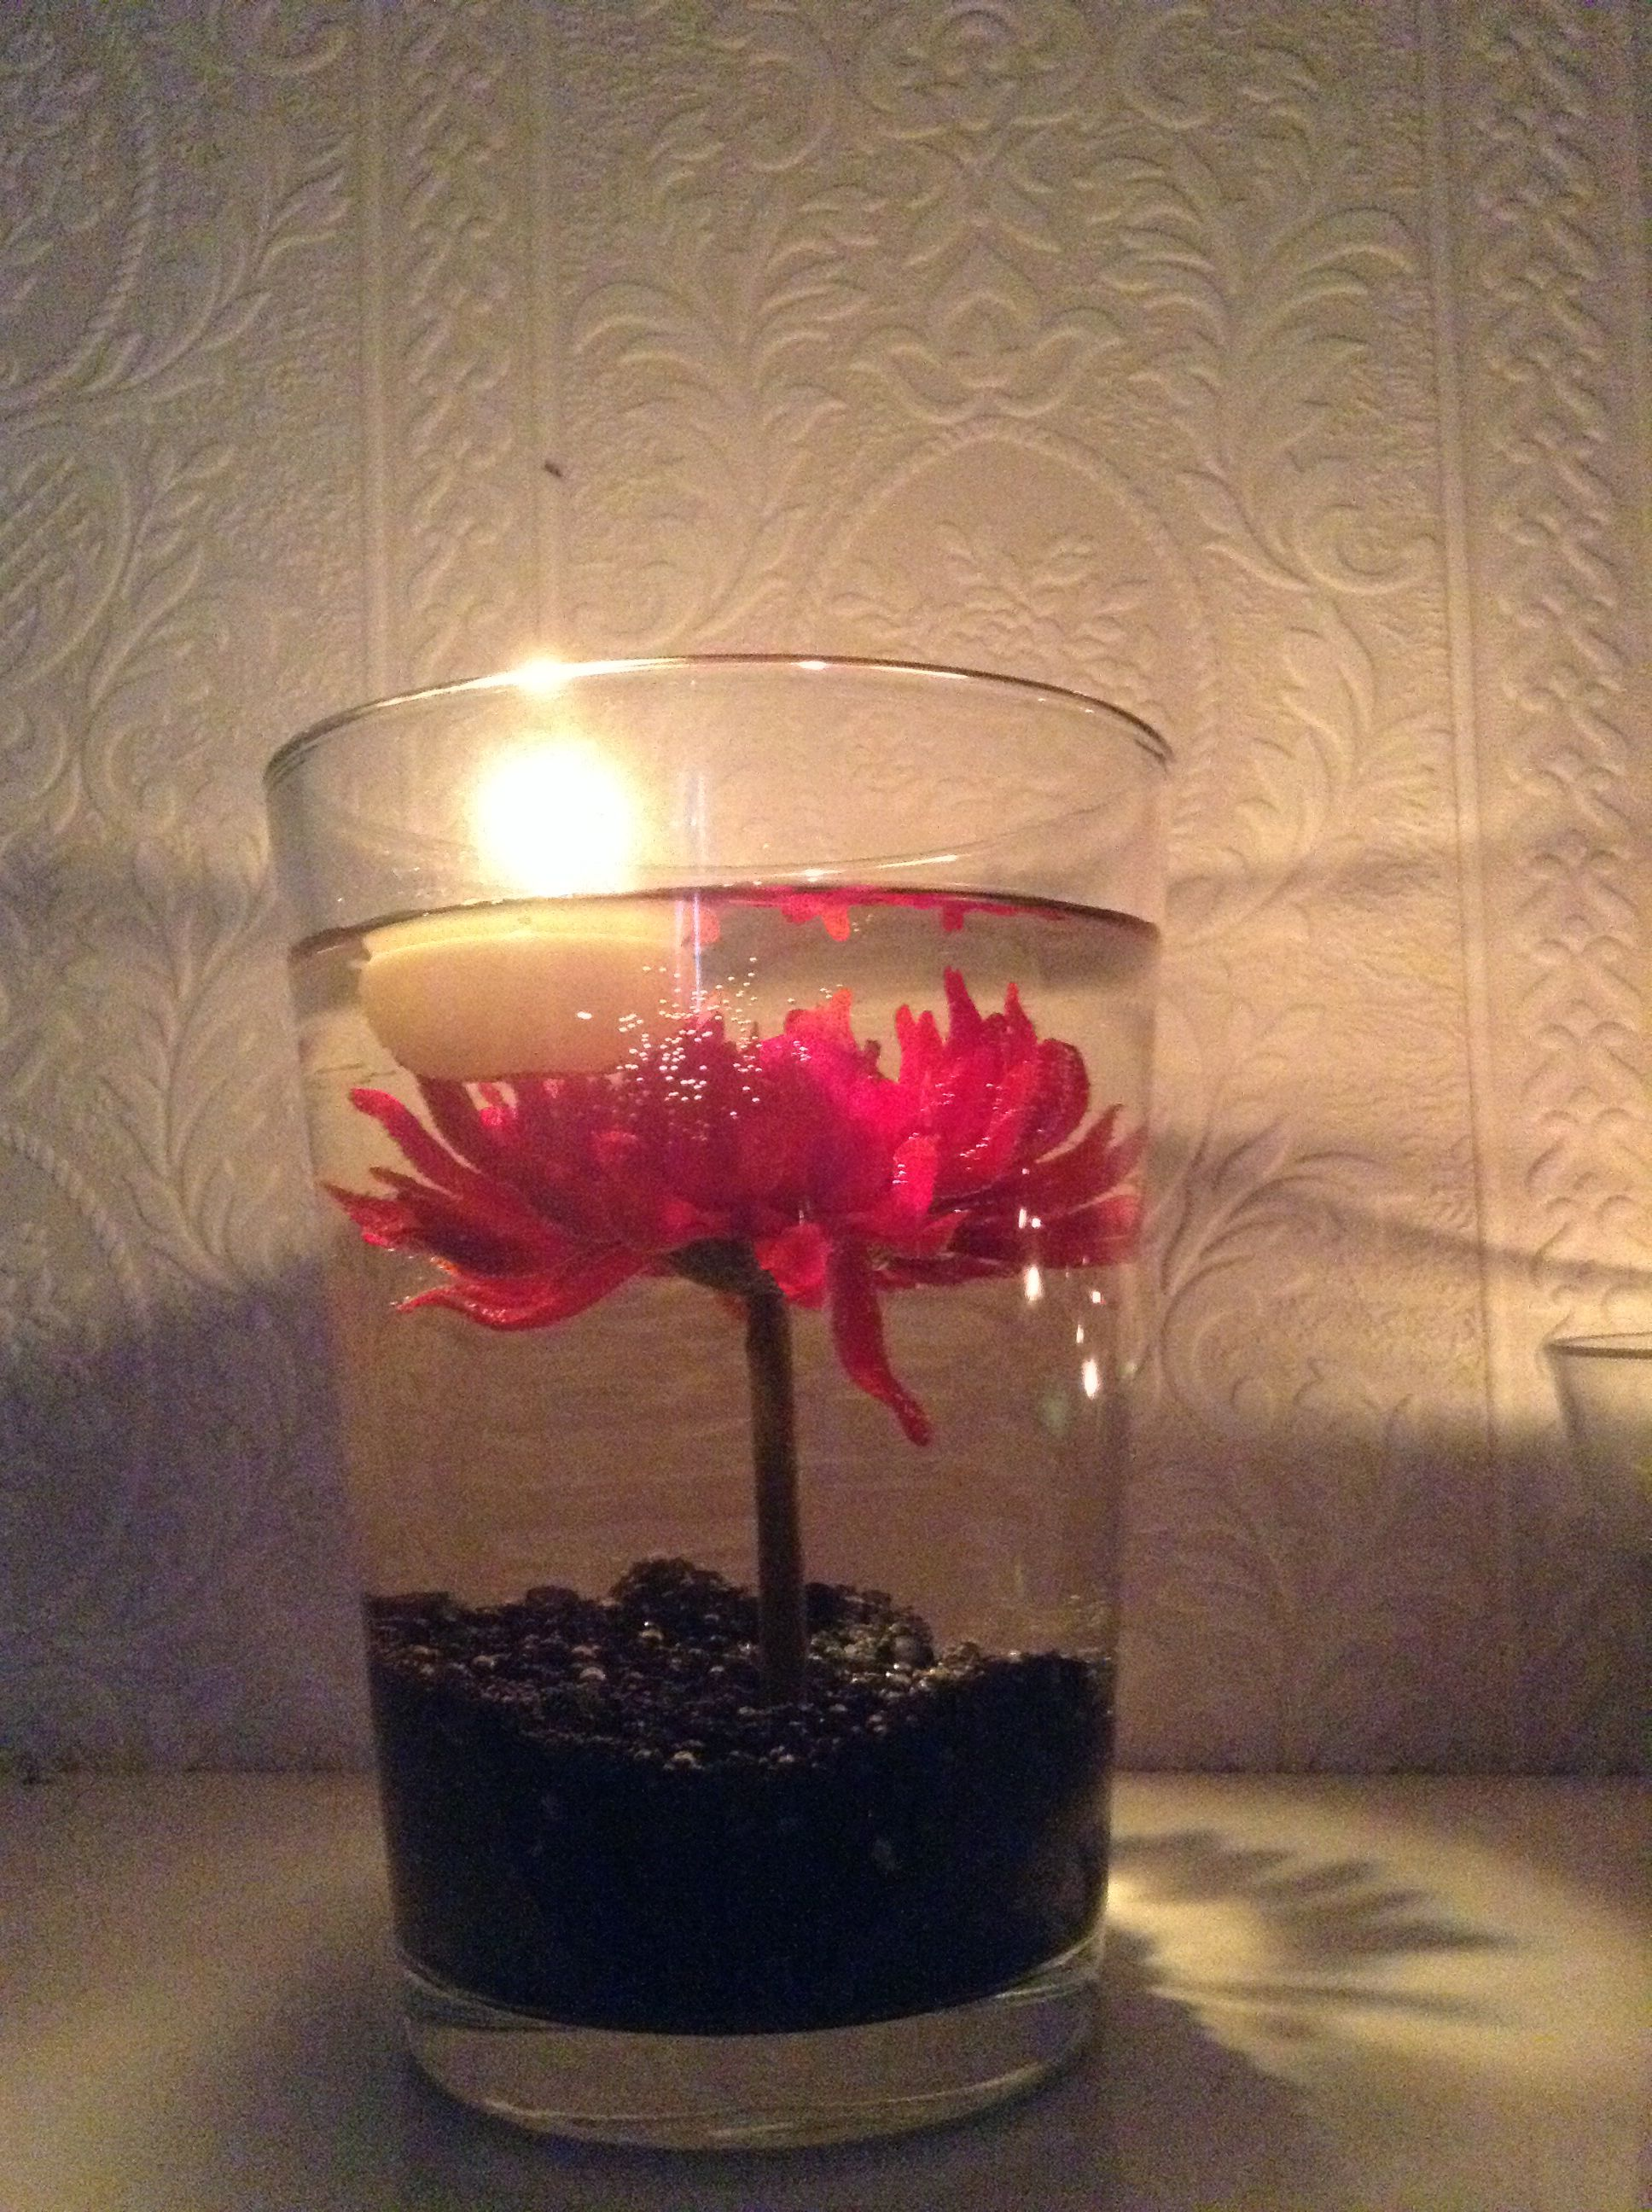 Floating candle diy centerpiece creative ideas pinterest